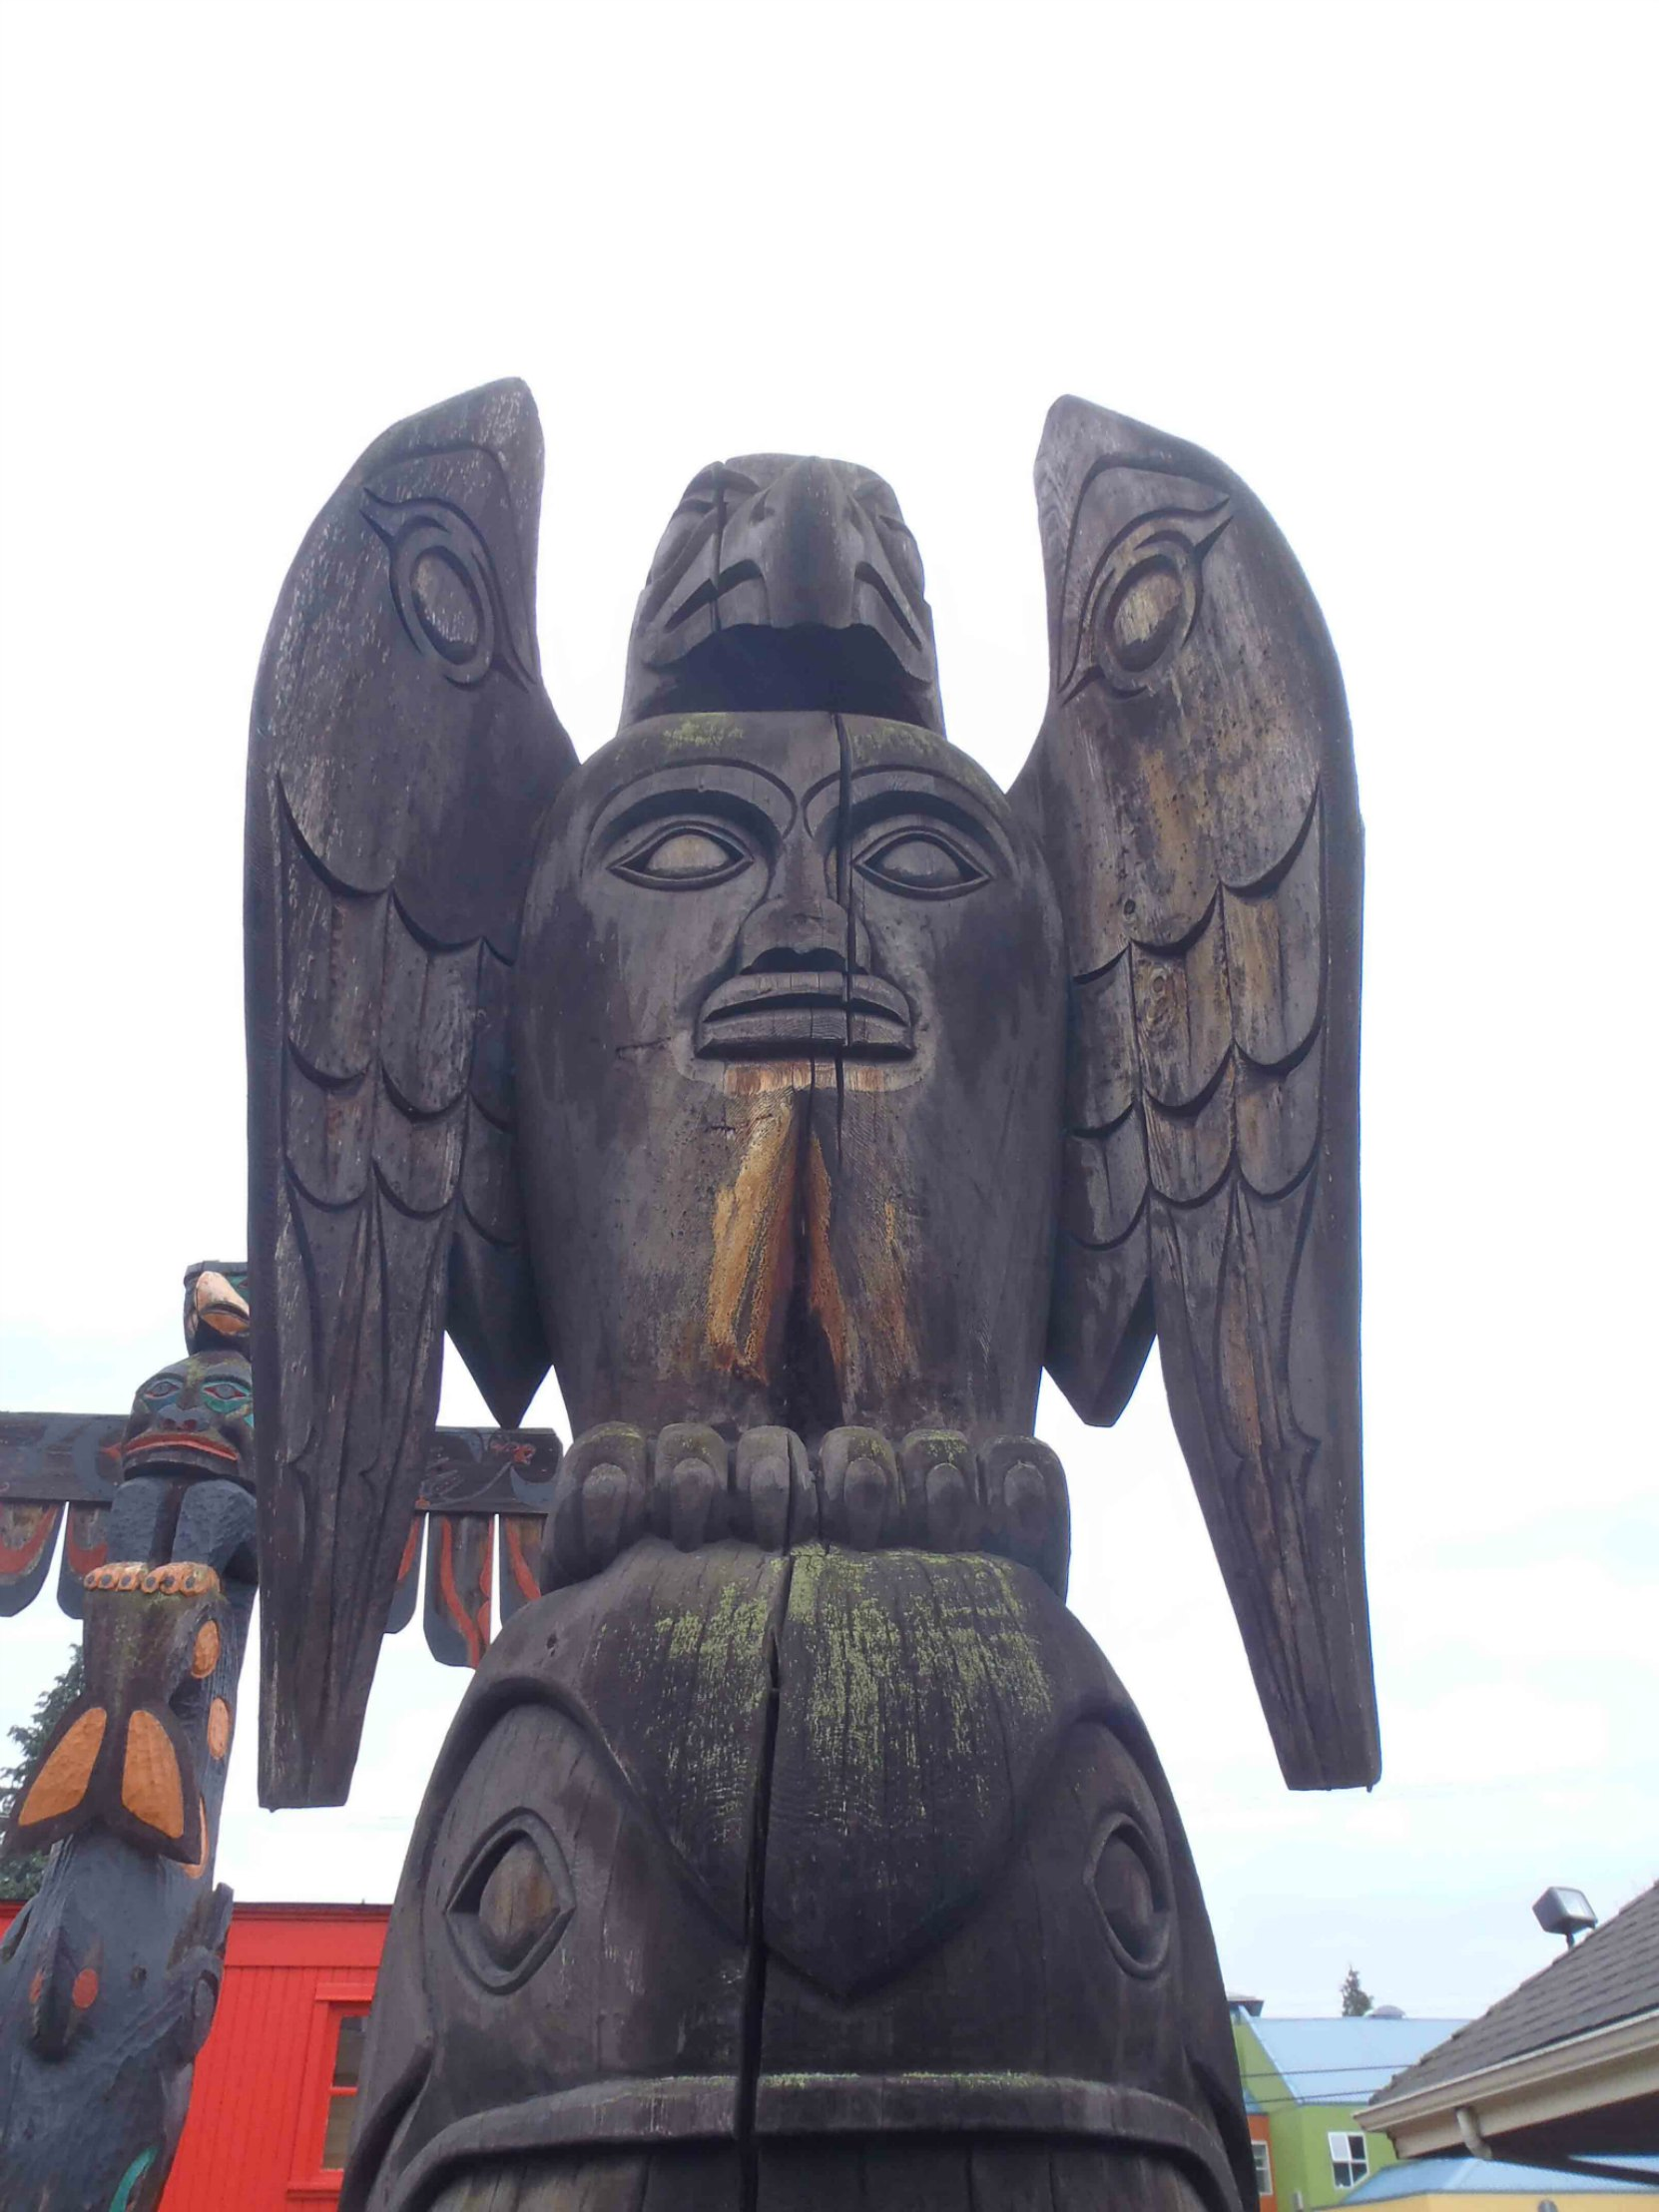 Transformation totem pole, Bald eagle figure - Canada Avenue, Duncan